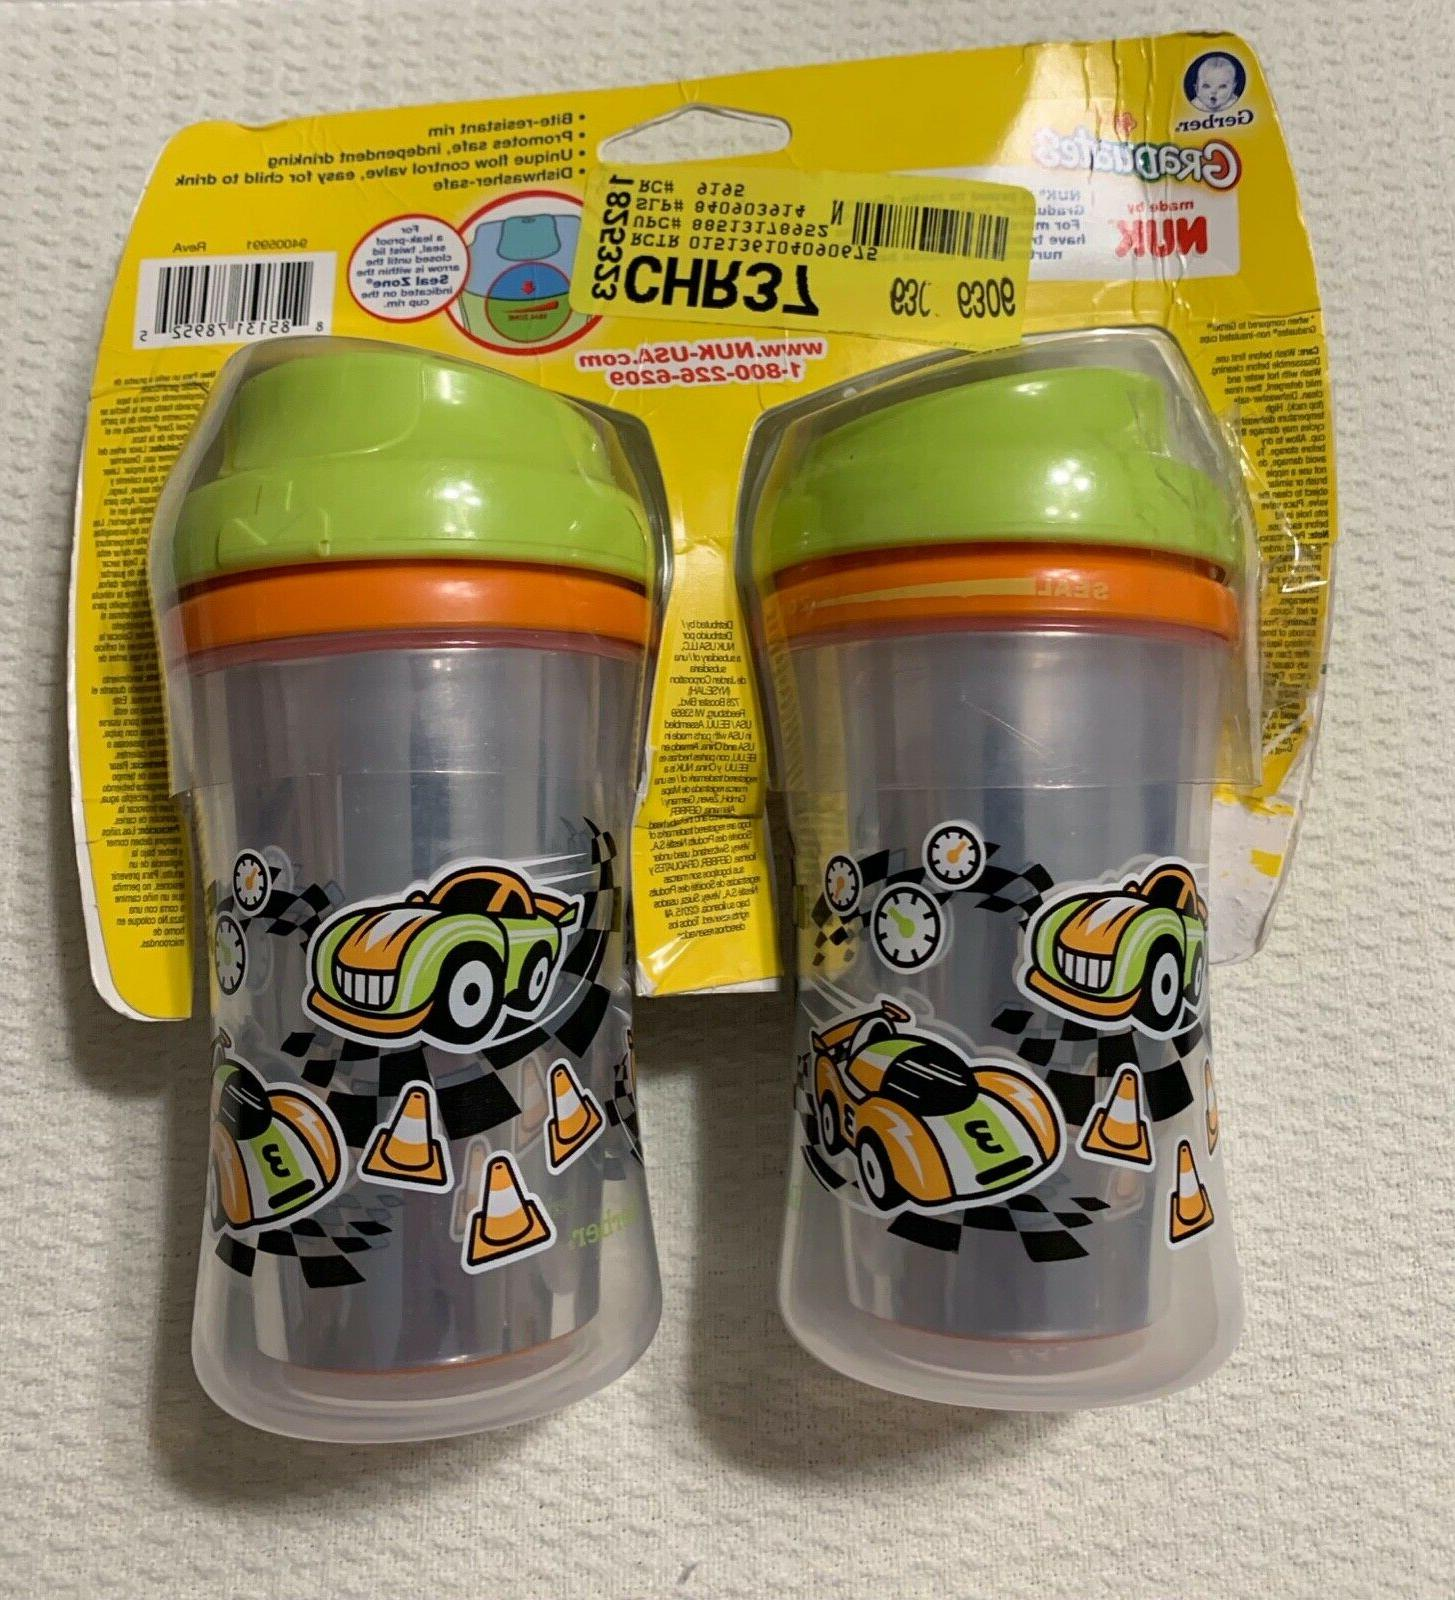 Gerber Ultimate Insulated 9 oz Cup 2